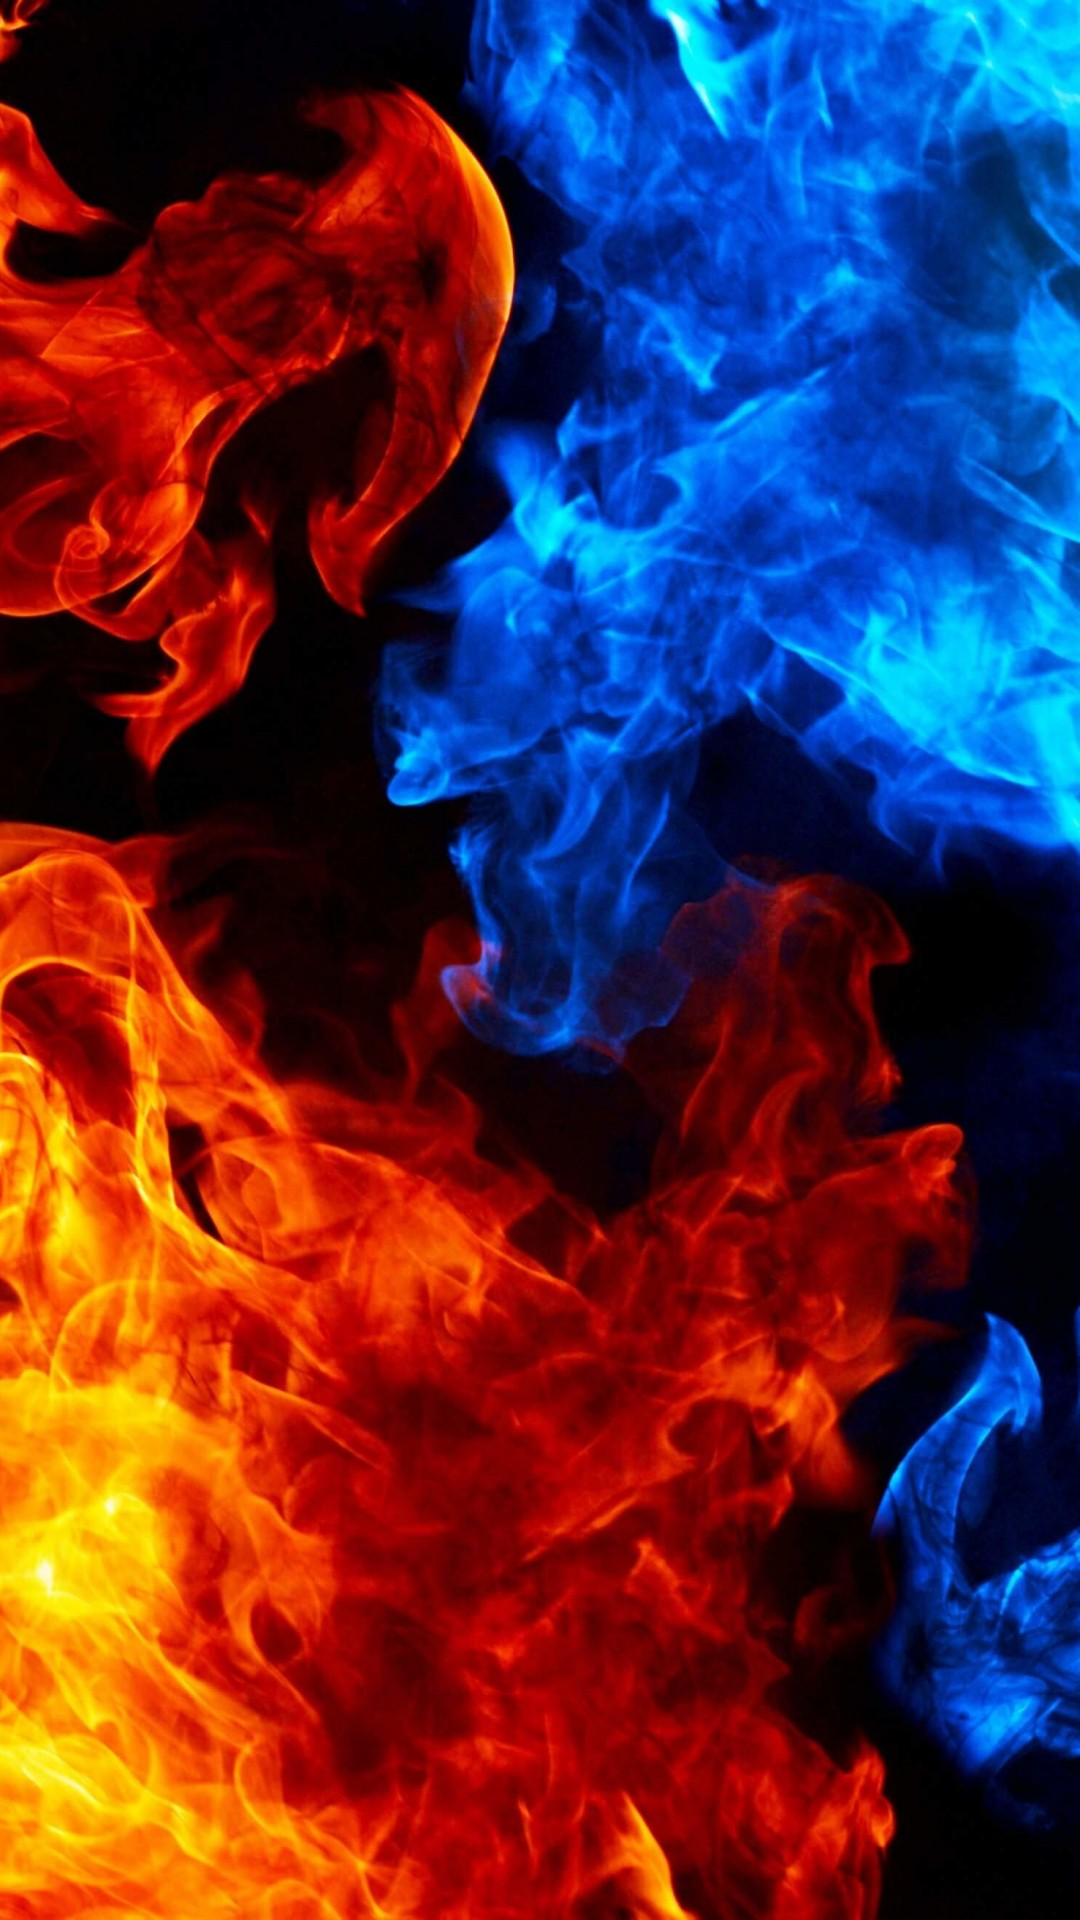 Blue And Red Fire Wallpaper for SONY Xperia Z3